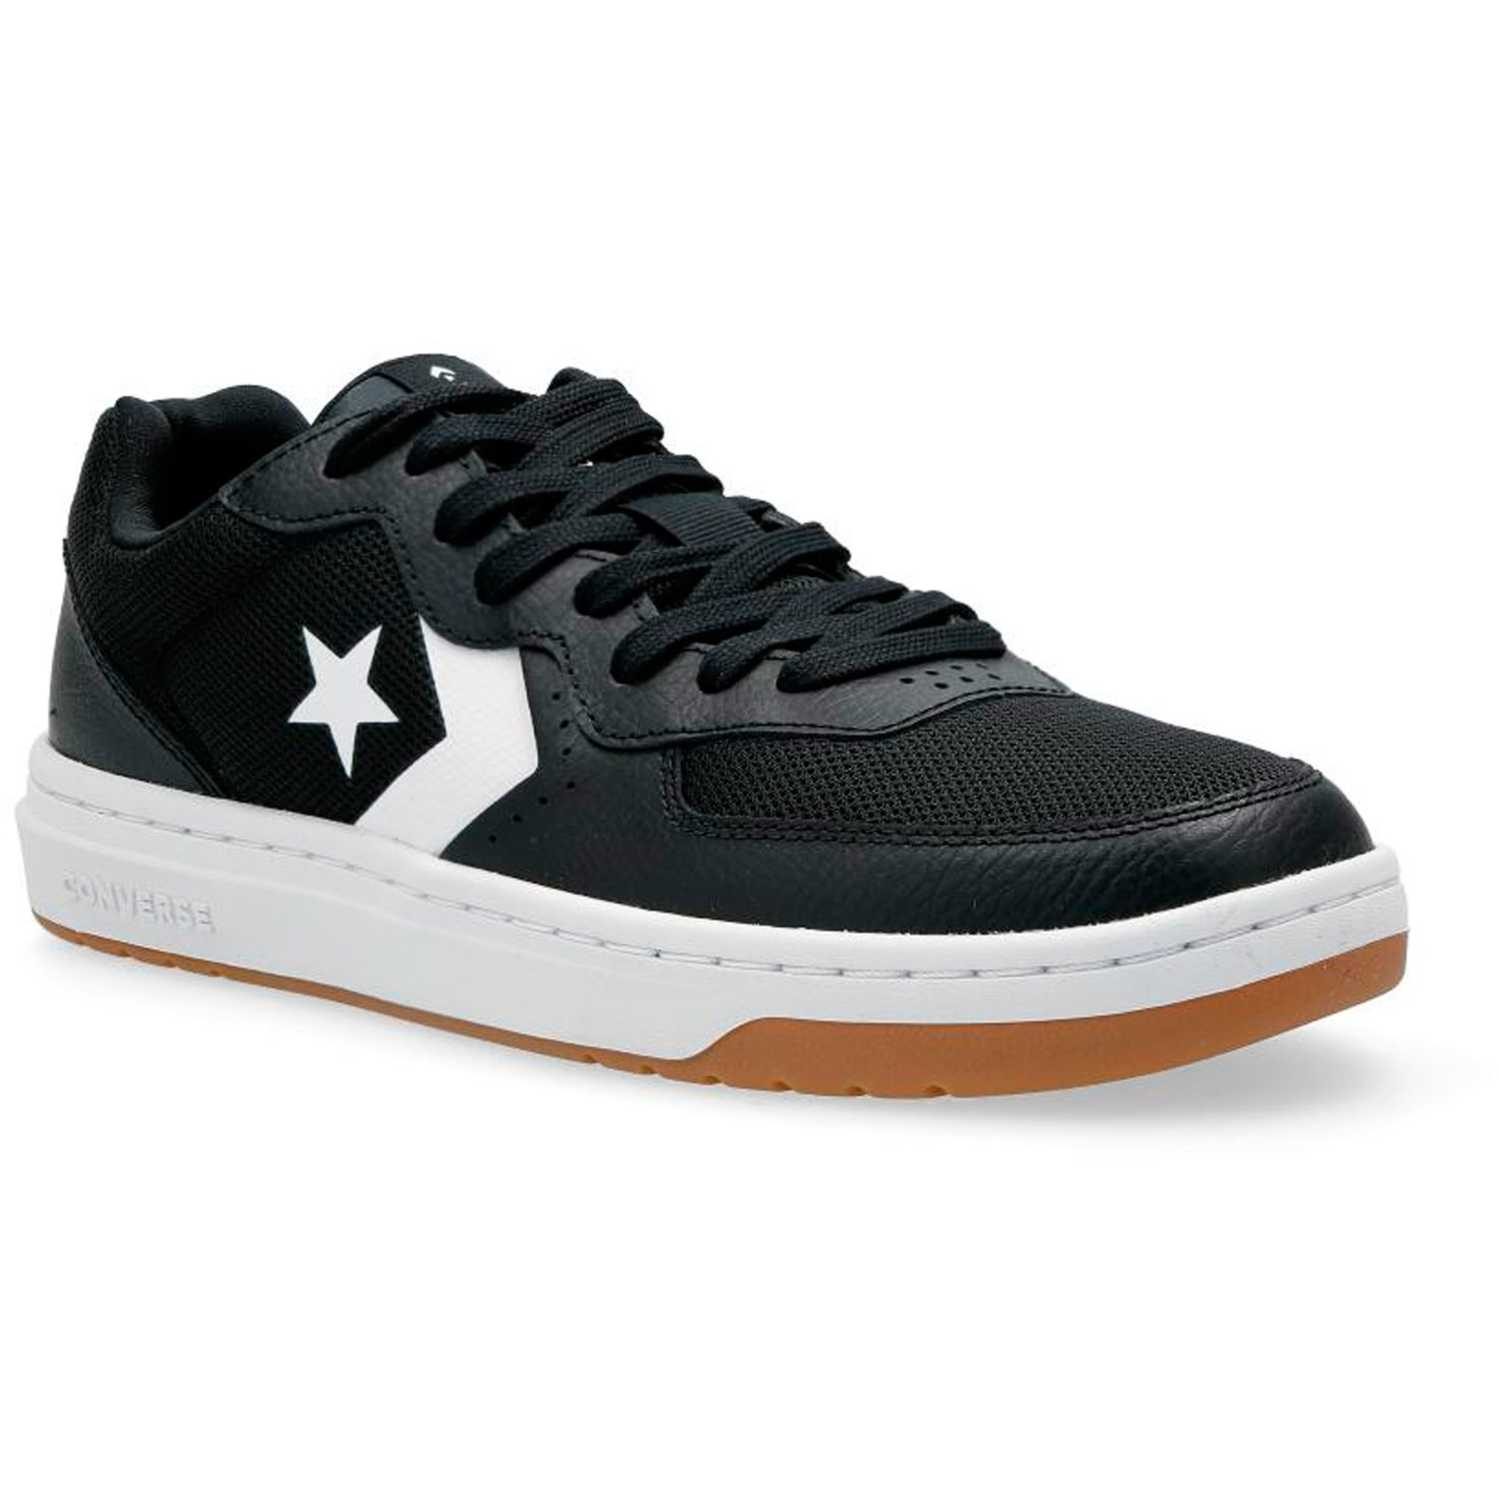 Converse converse rival leather ox Negro / blanco Walking